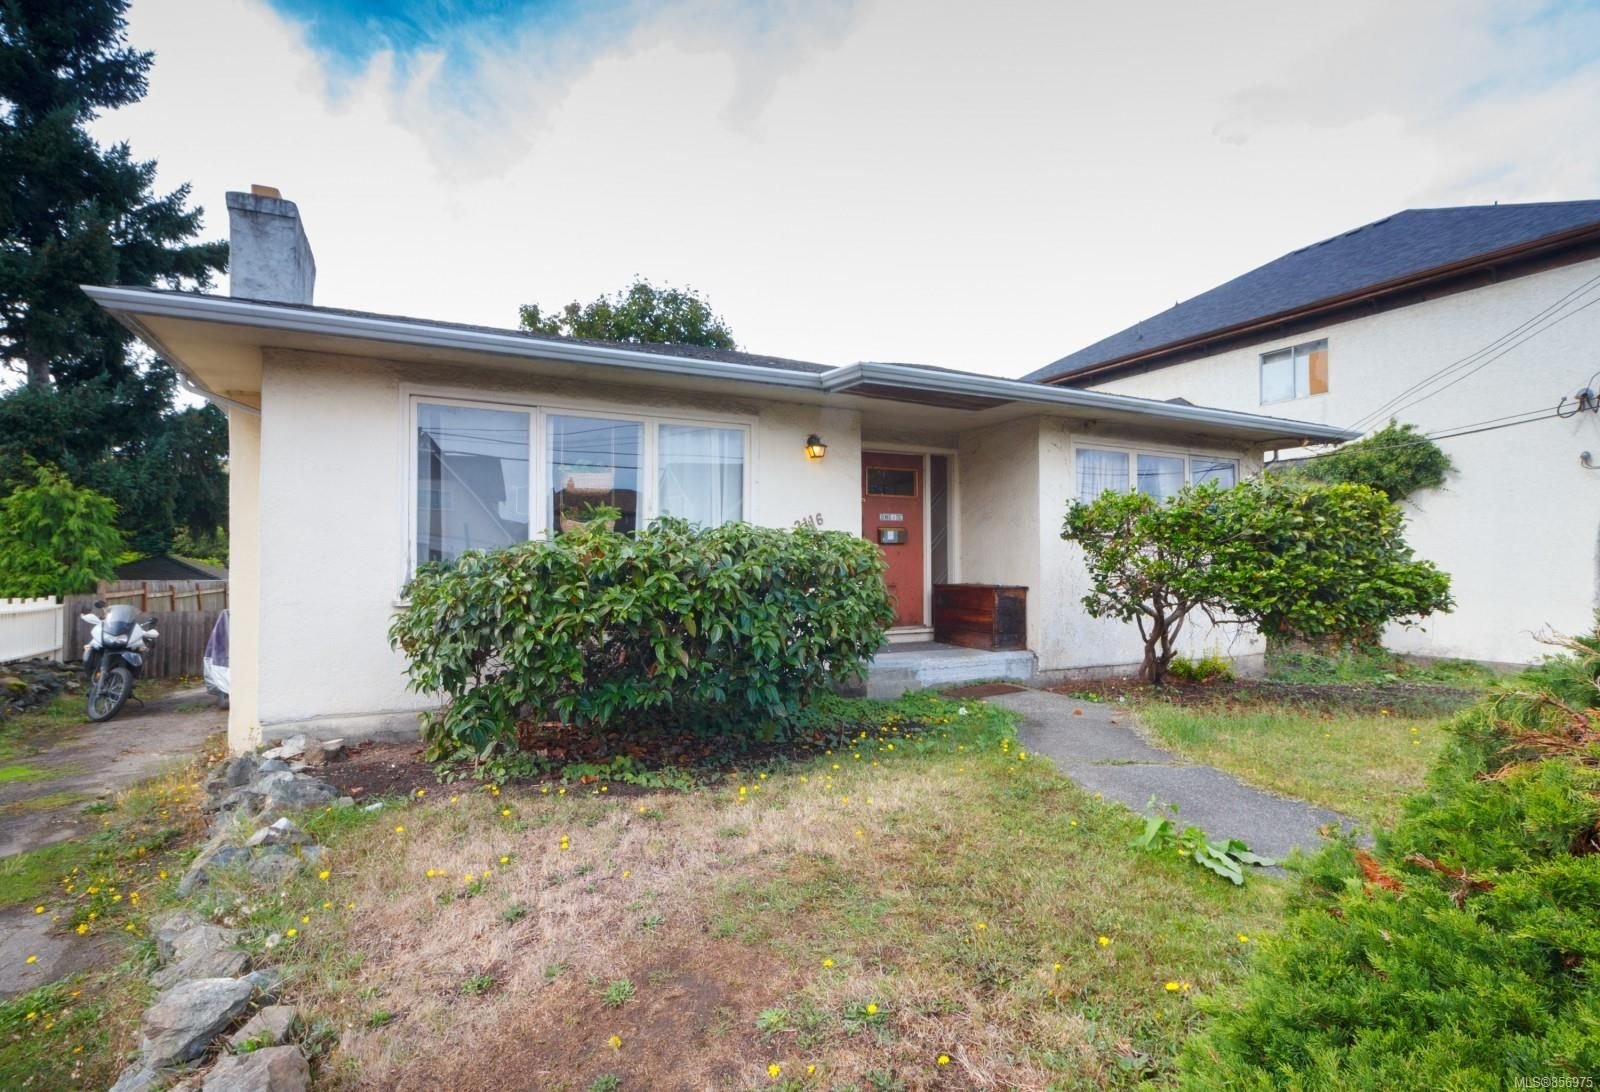 Main Photo: 2116 Cook St in : Vi Central Park House for sale (Victoria)  : MLS®# 856975